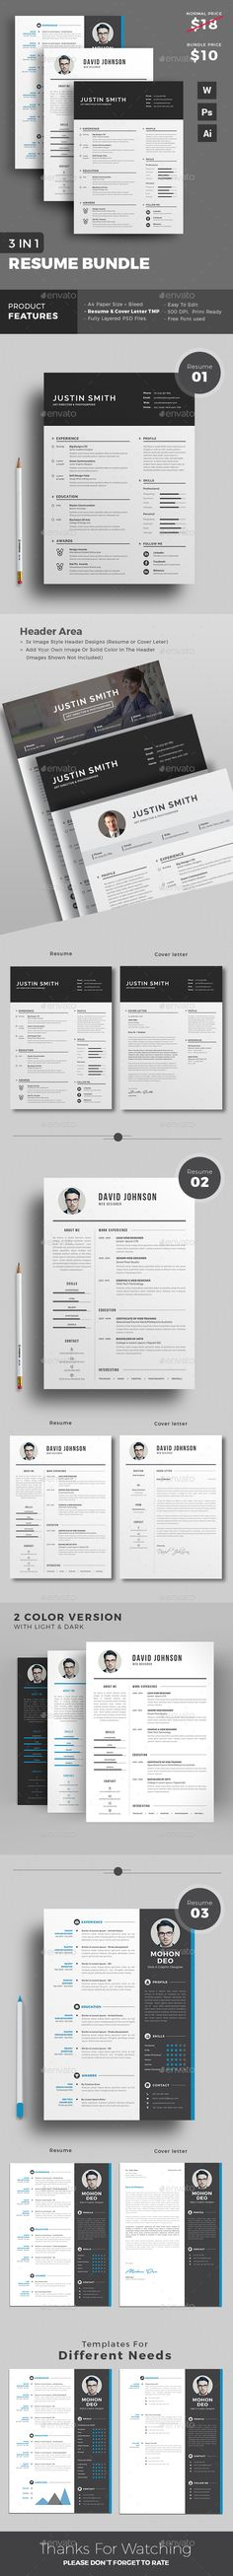 Resume Bundle 50%+ Saves on Every Purchase | Download https://graphicriver.net/item/resume/18193281?ref=themedevisers